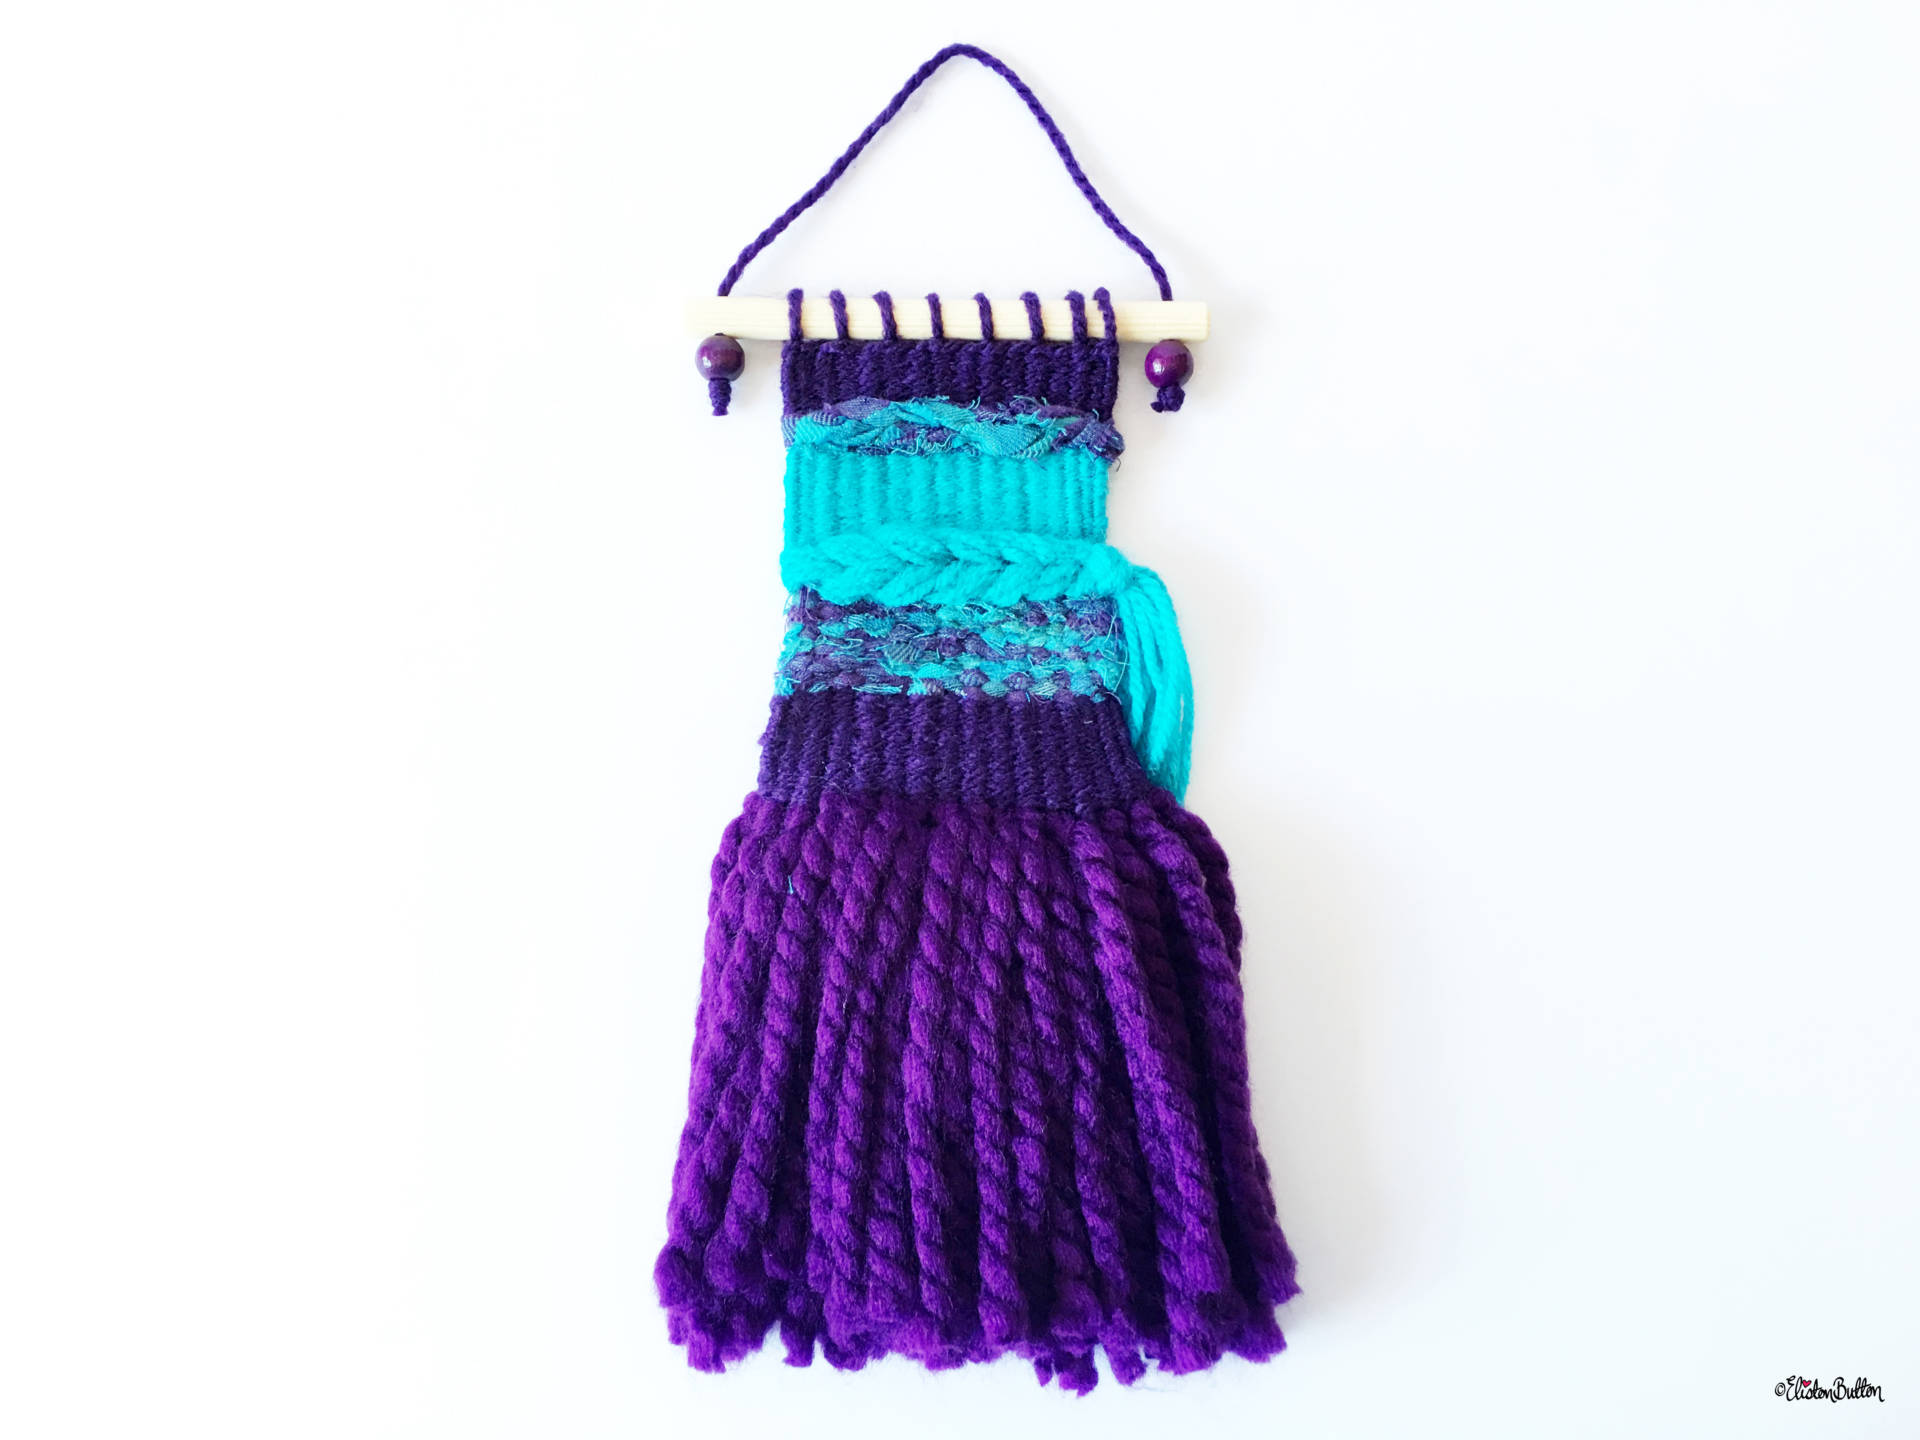 Purple and Turquoise Mini Woven Wall Hanging in Full - Create 30 - No.2 - Mini Woven Wall Hangings at www.elistonbutton.com - Eliston Button - That Crafty Kid – Art, Design, Craft & Adventure.